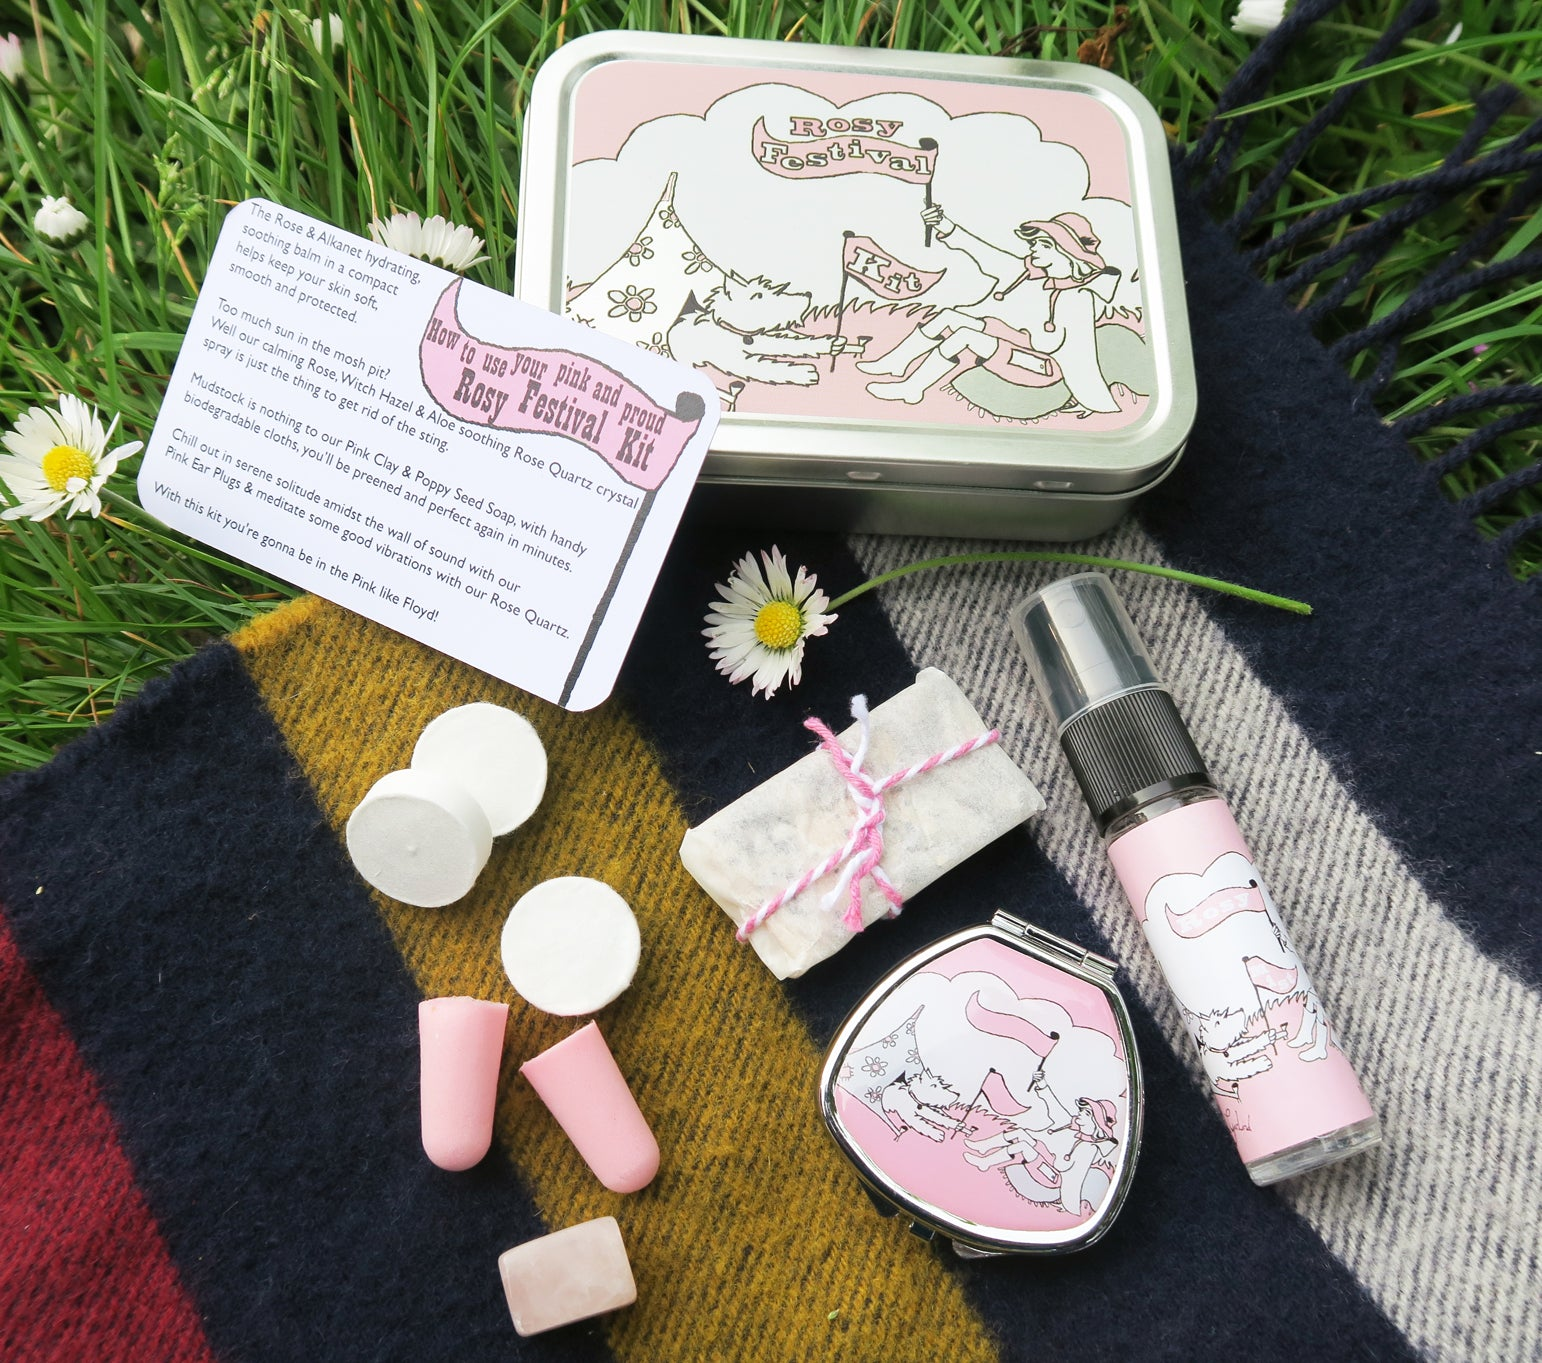 Kits in Tins - Rosy Festival Kit - Andrea Garland